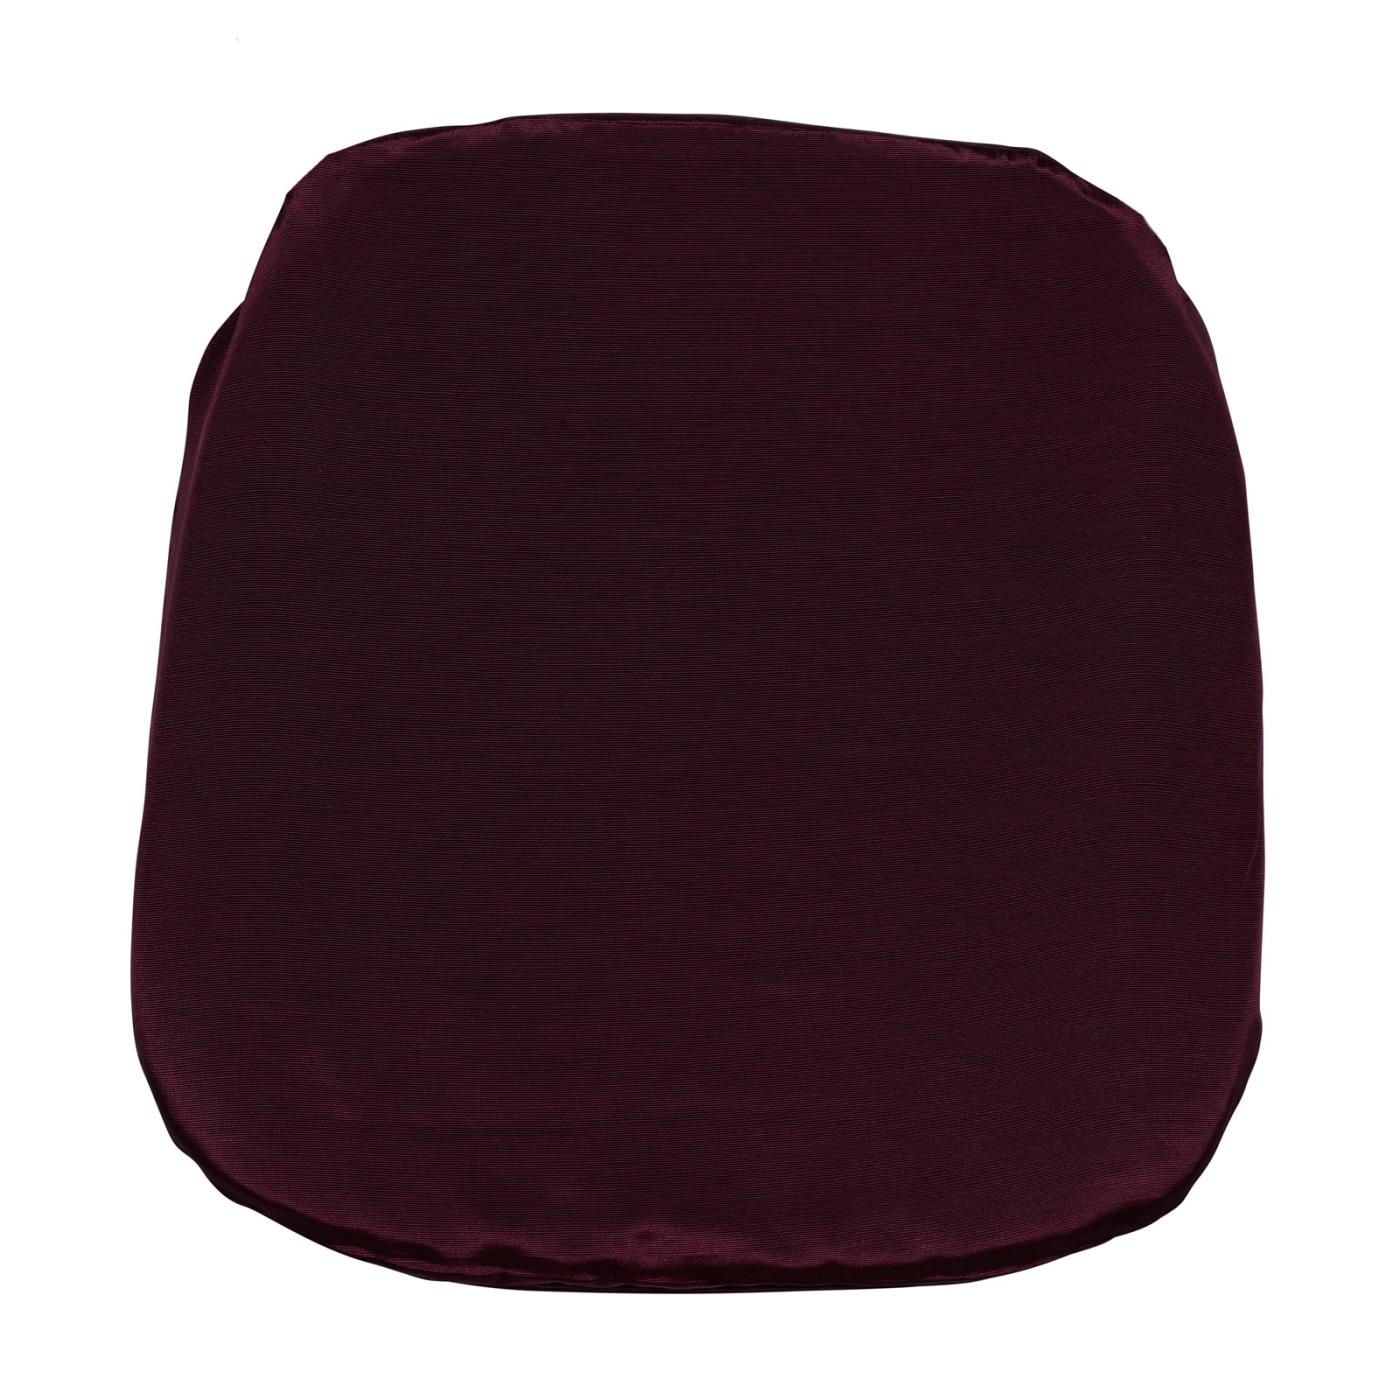 Bengaline Seat Cushion - Burgundy